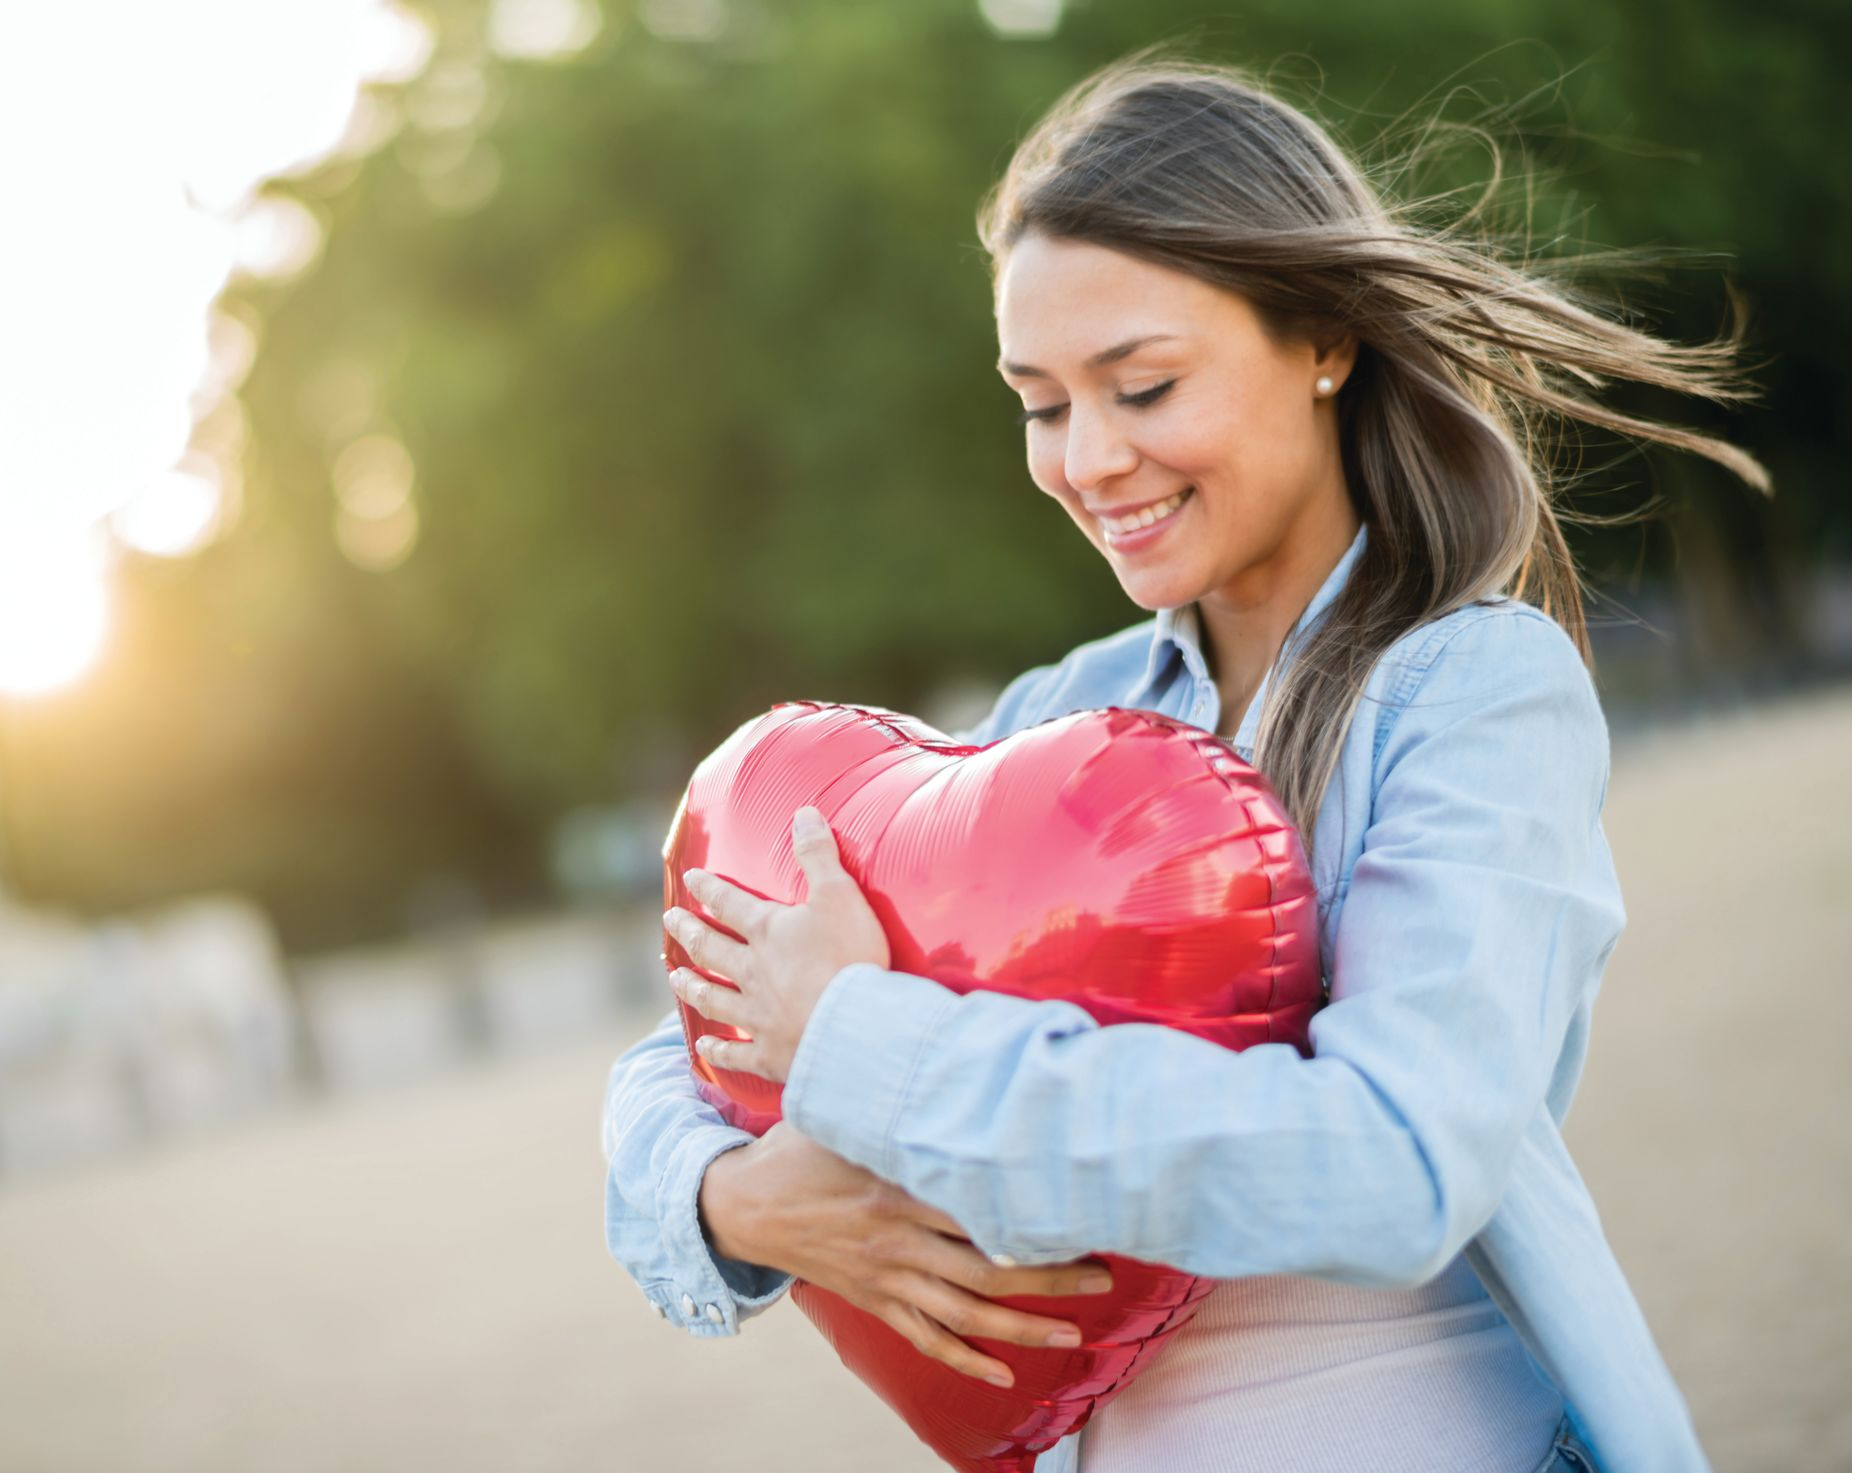 Woman holding a heart image.